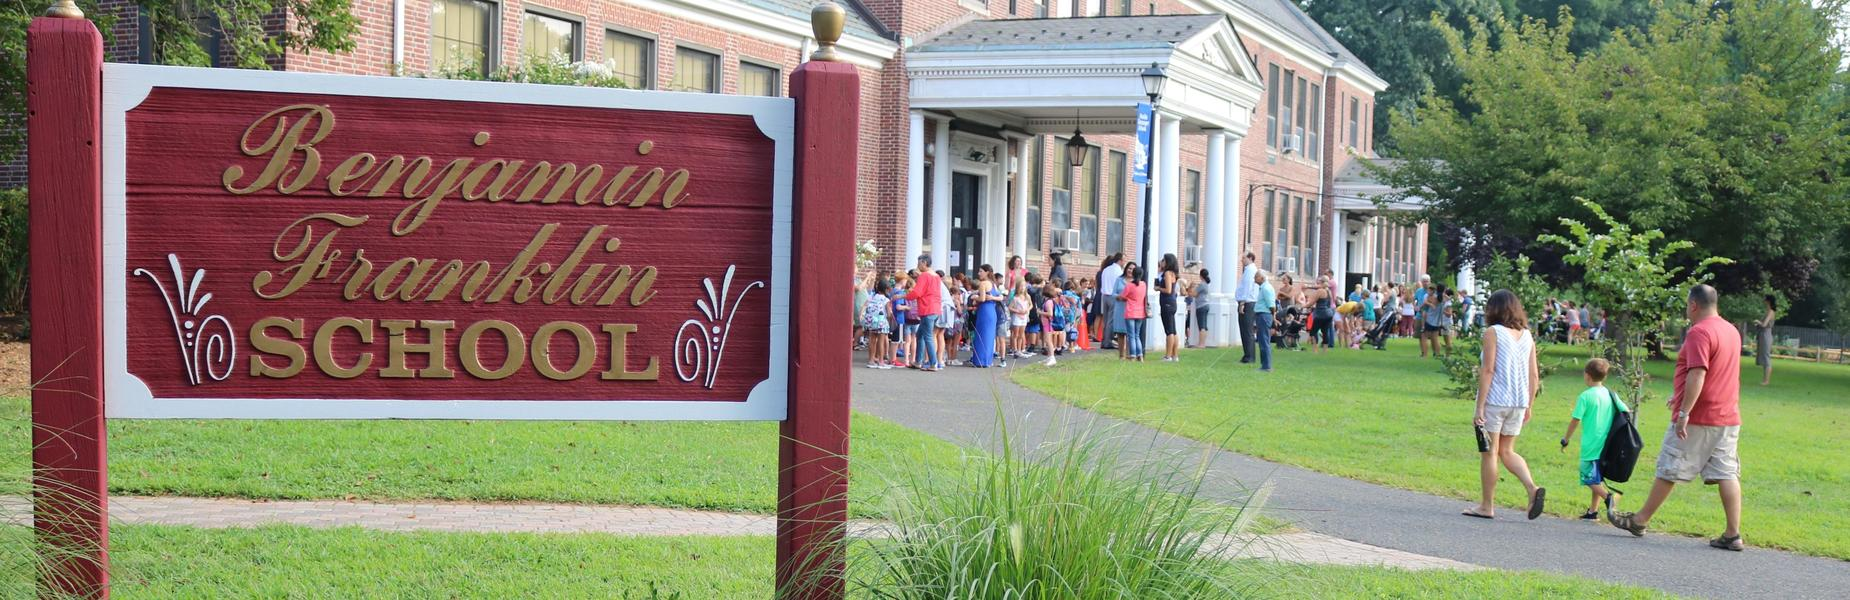 Photo of Franklin School sign with students and families arriving for start of a new school year.